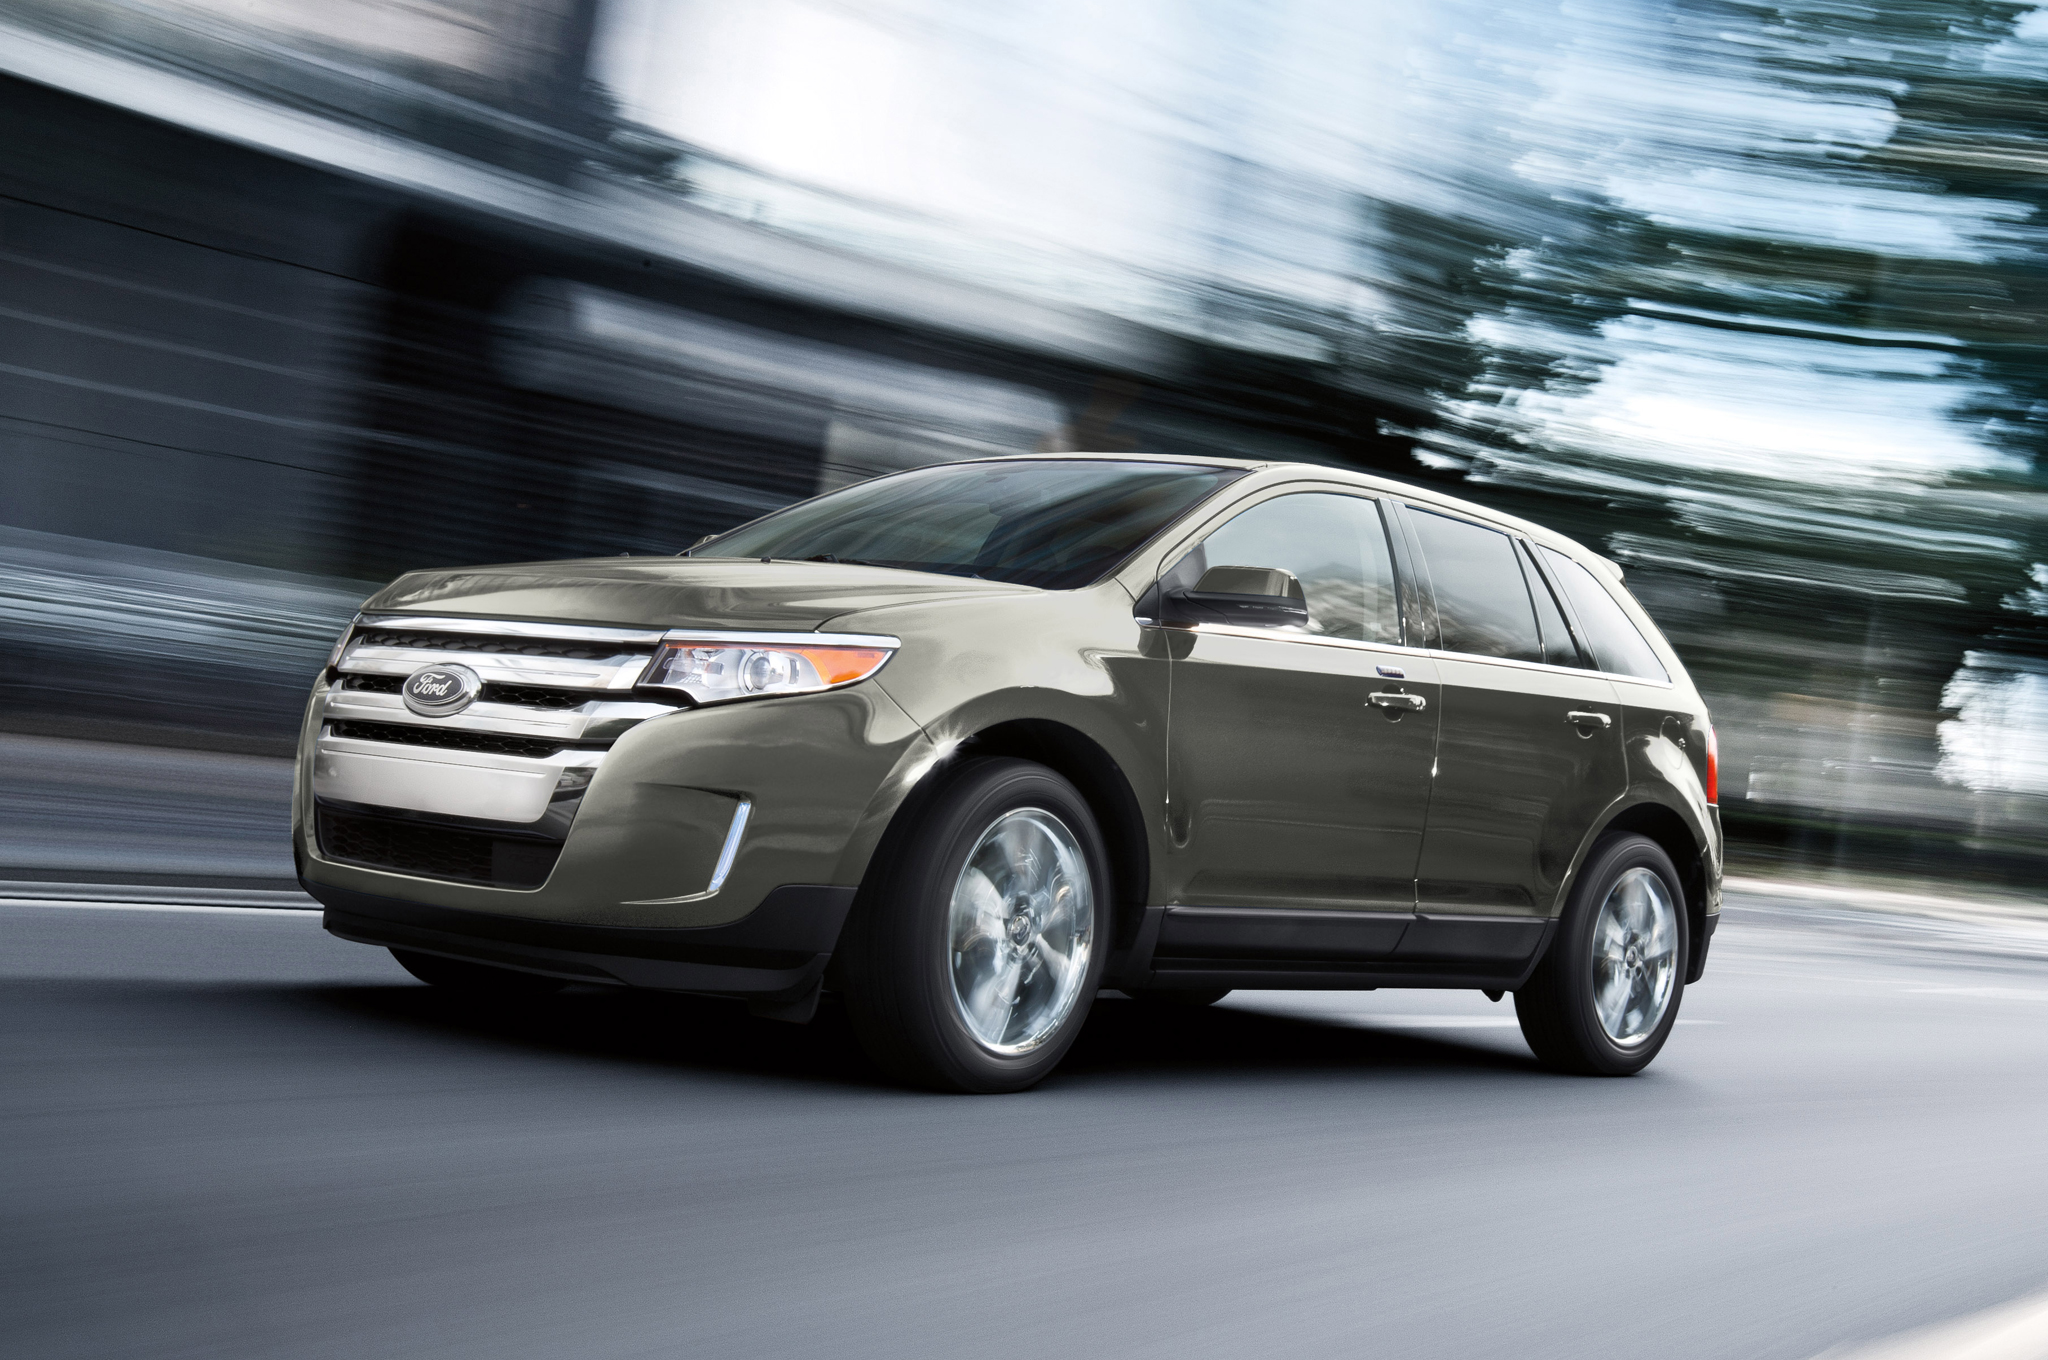 Ford Edge I Restyling 2011 - 2014 SUV 5 door #3